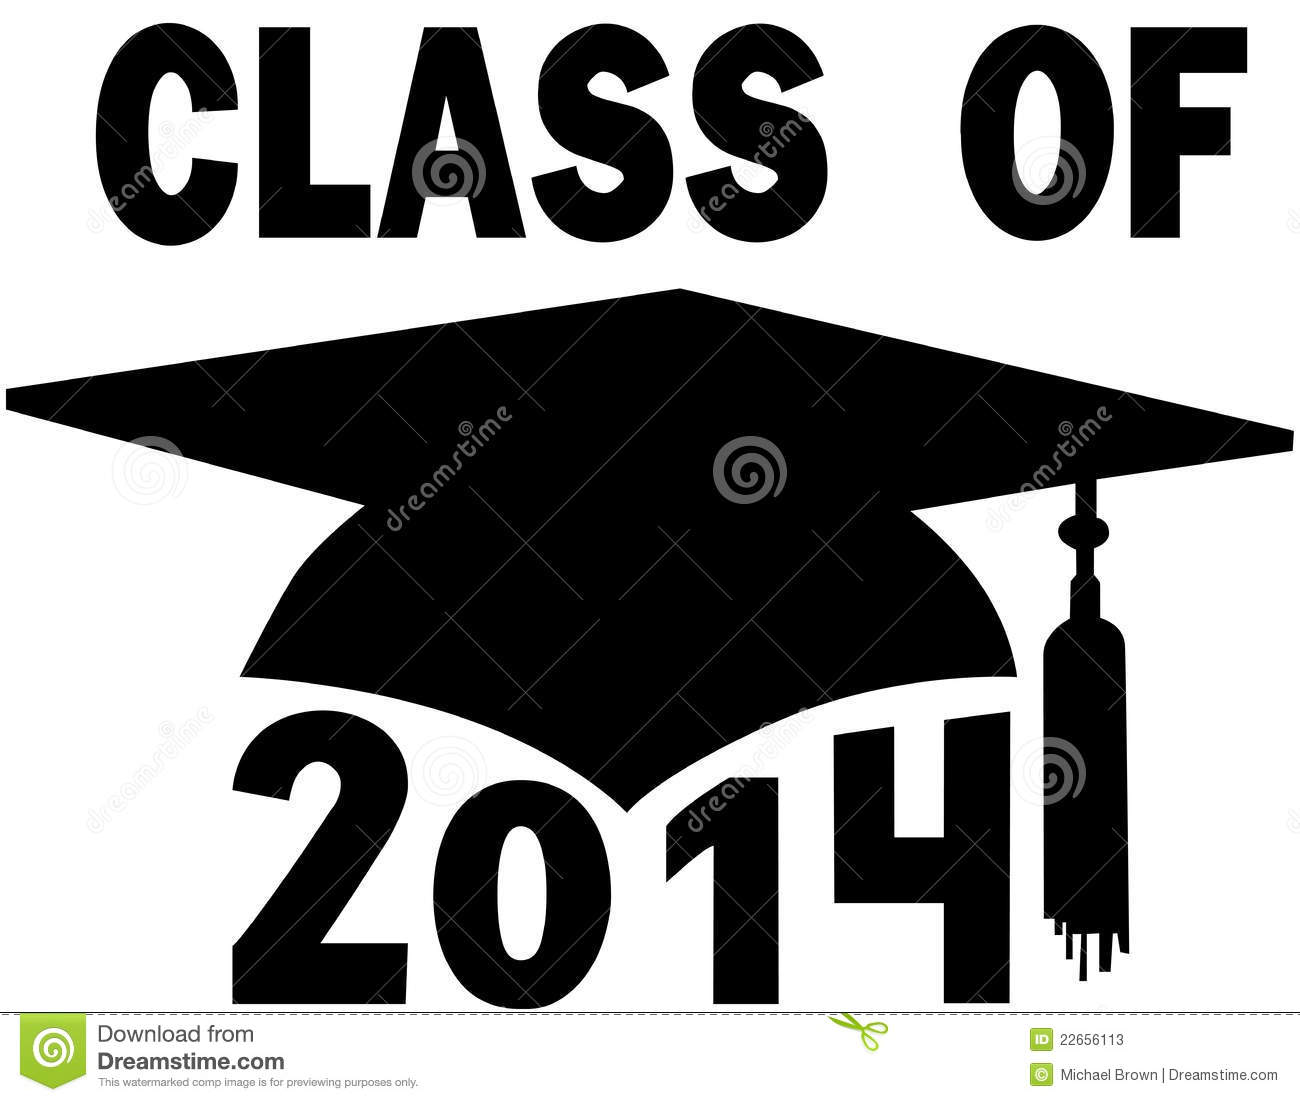 Stock Photos  Class of 2014 College High School Graduation CapGraduation Class Of 2014 Images